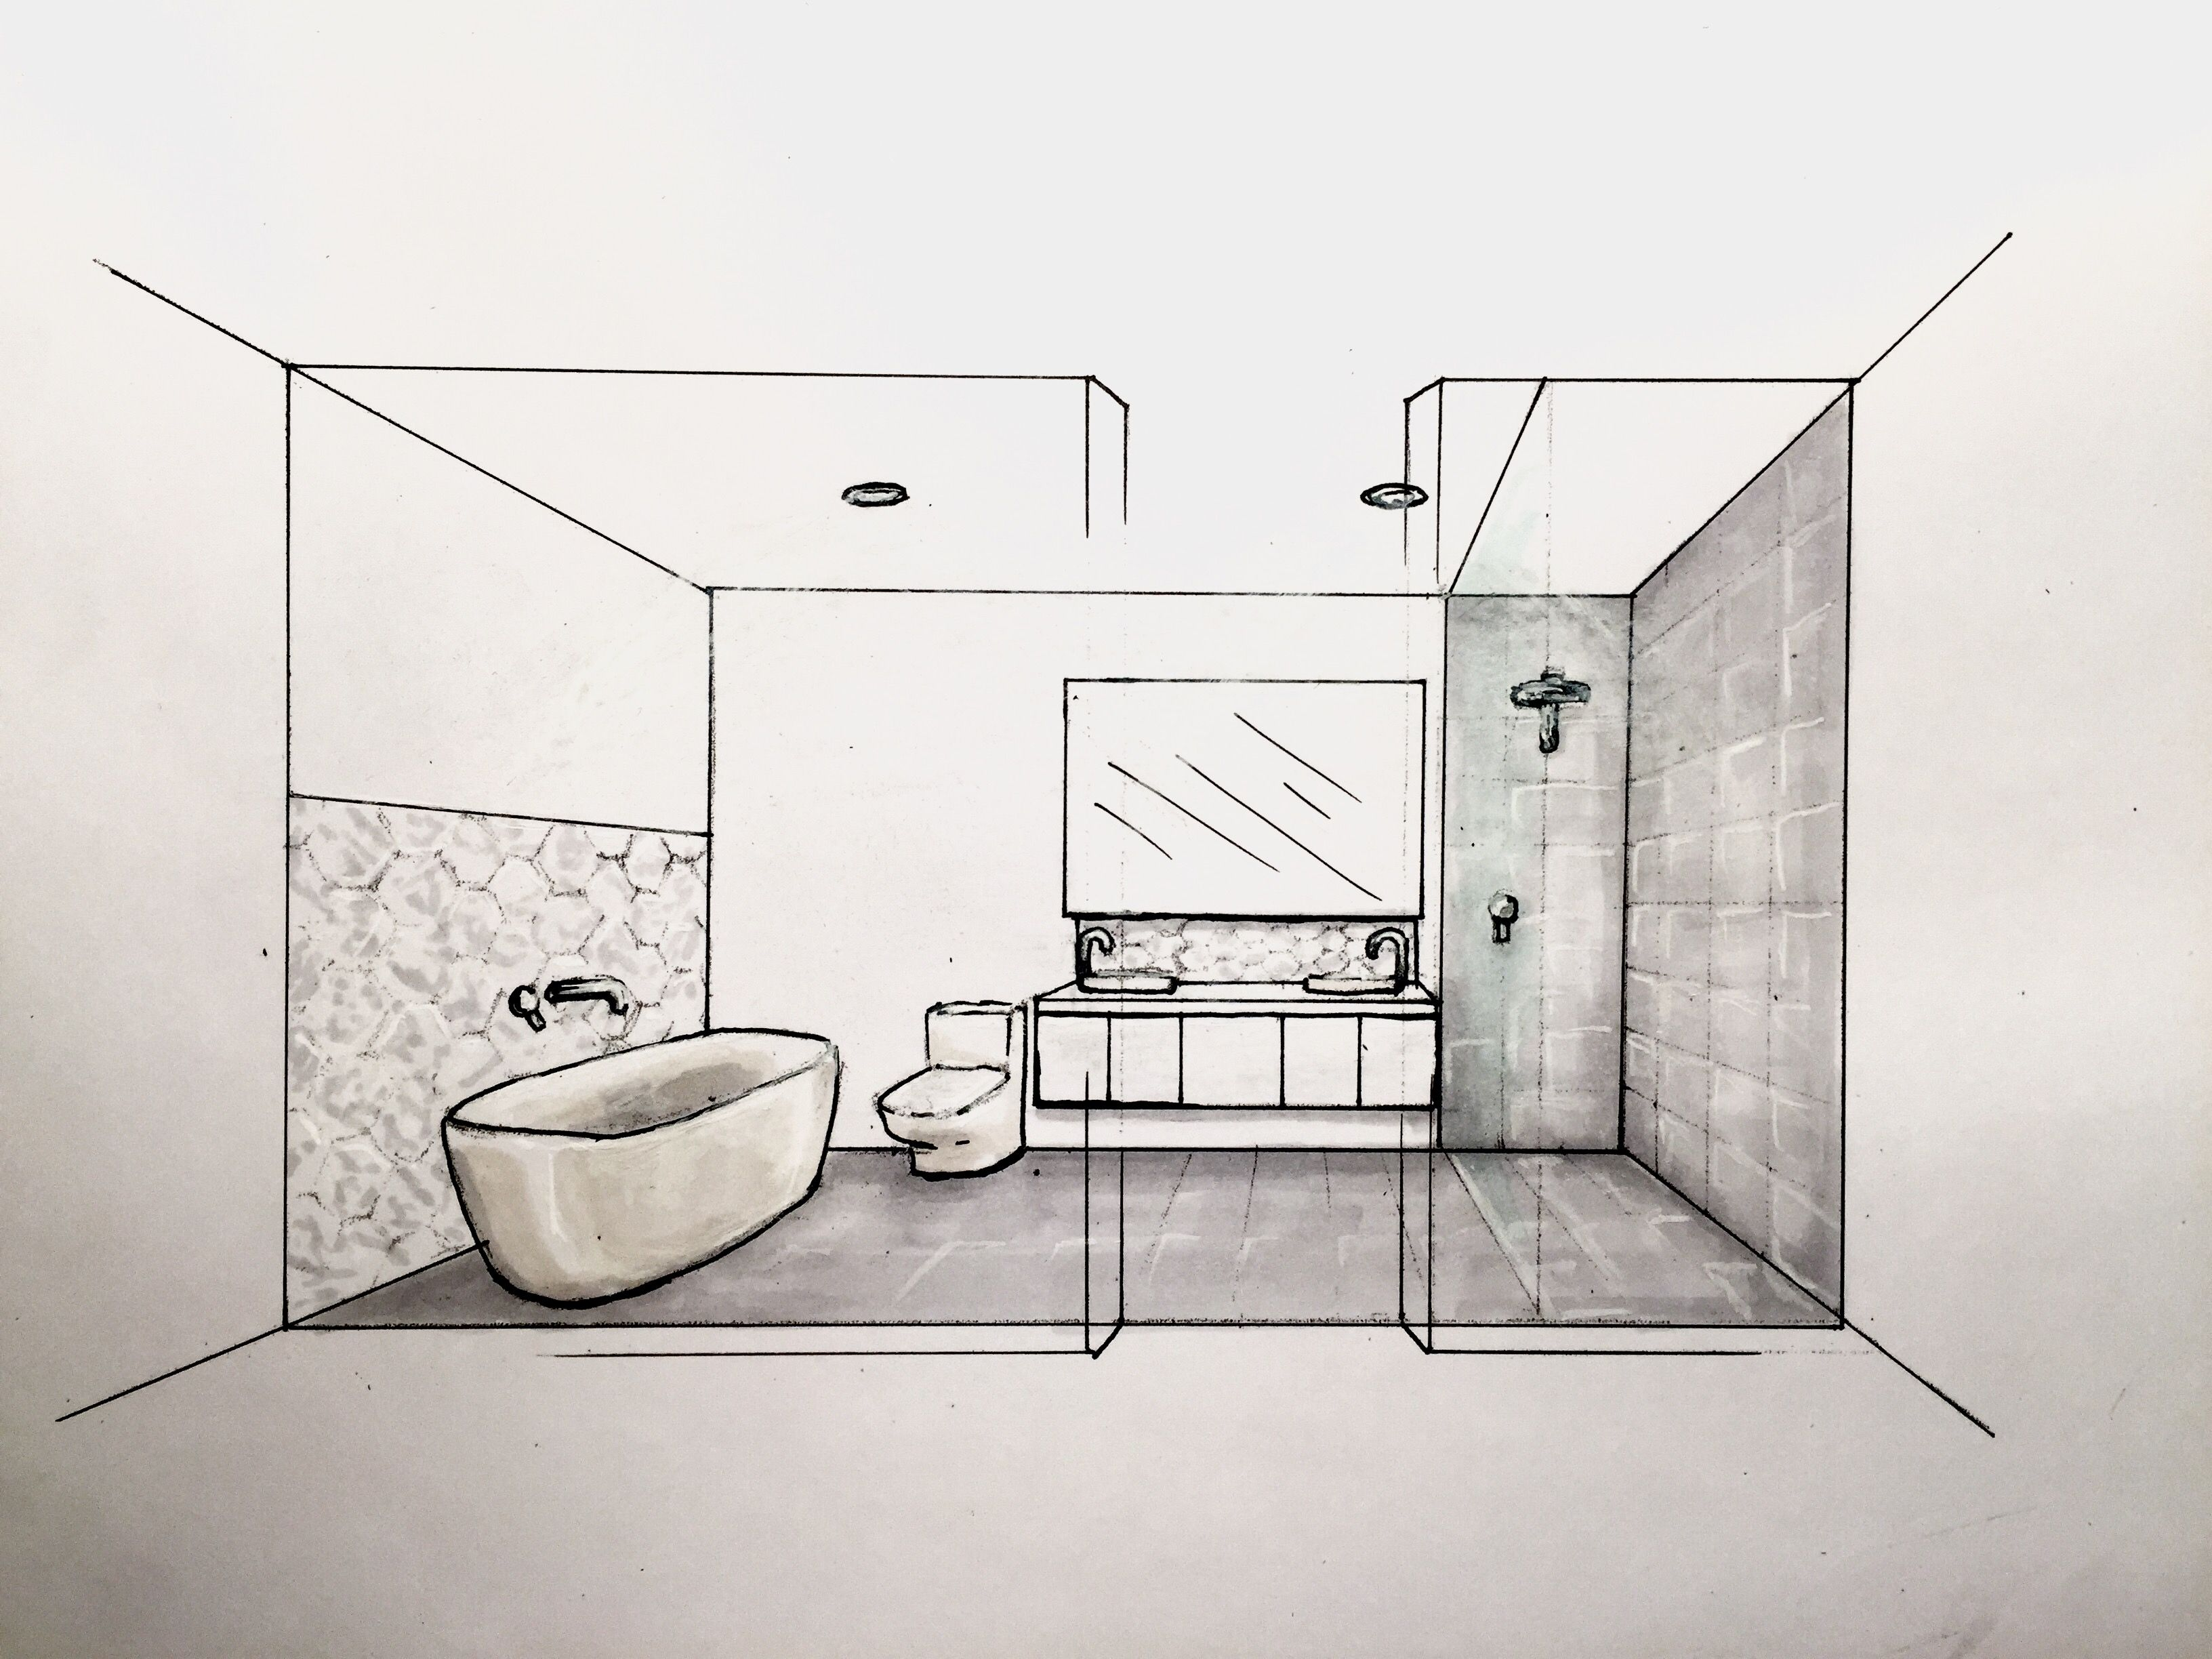 Bathroom Concept Using 3d Perspective And Copicmarkers